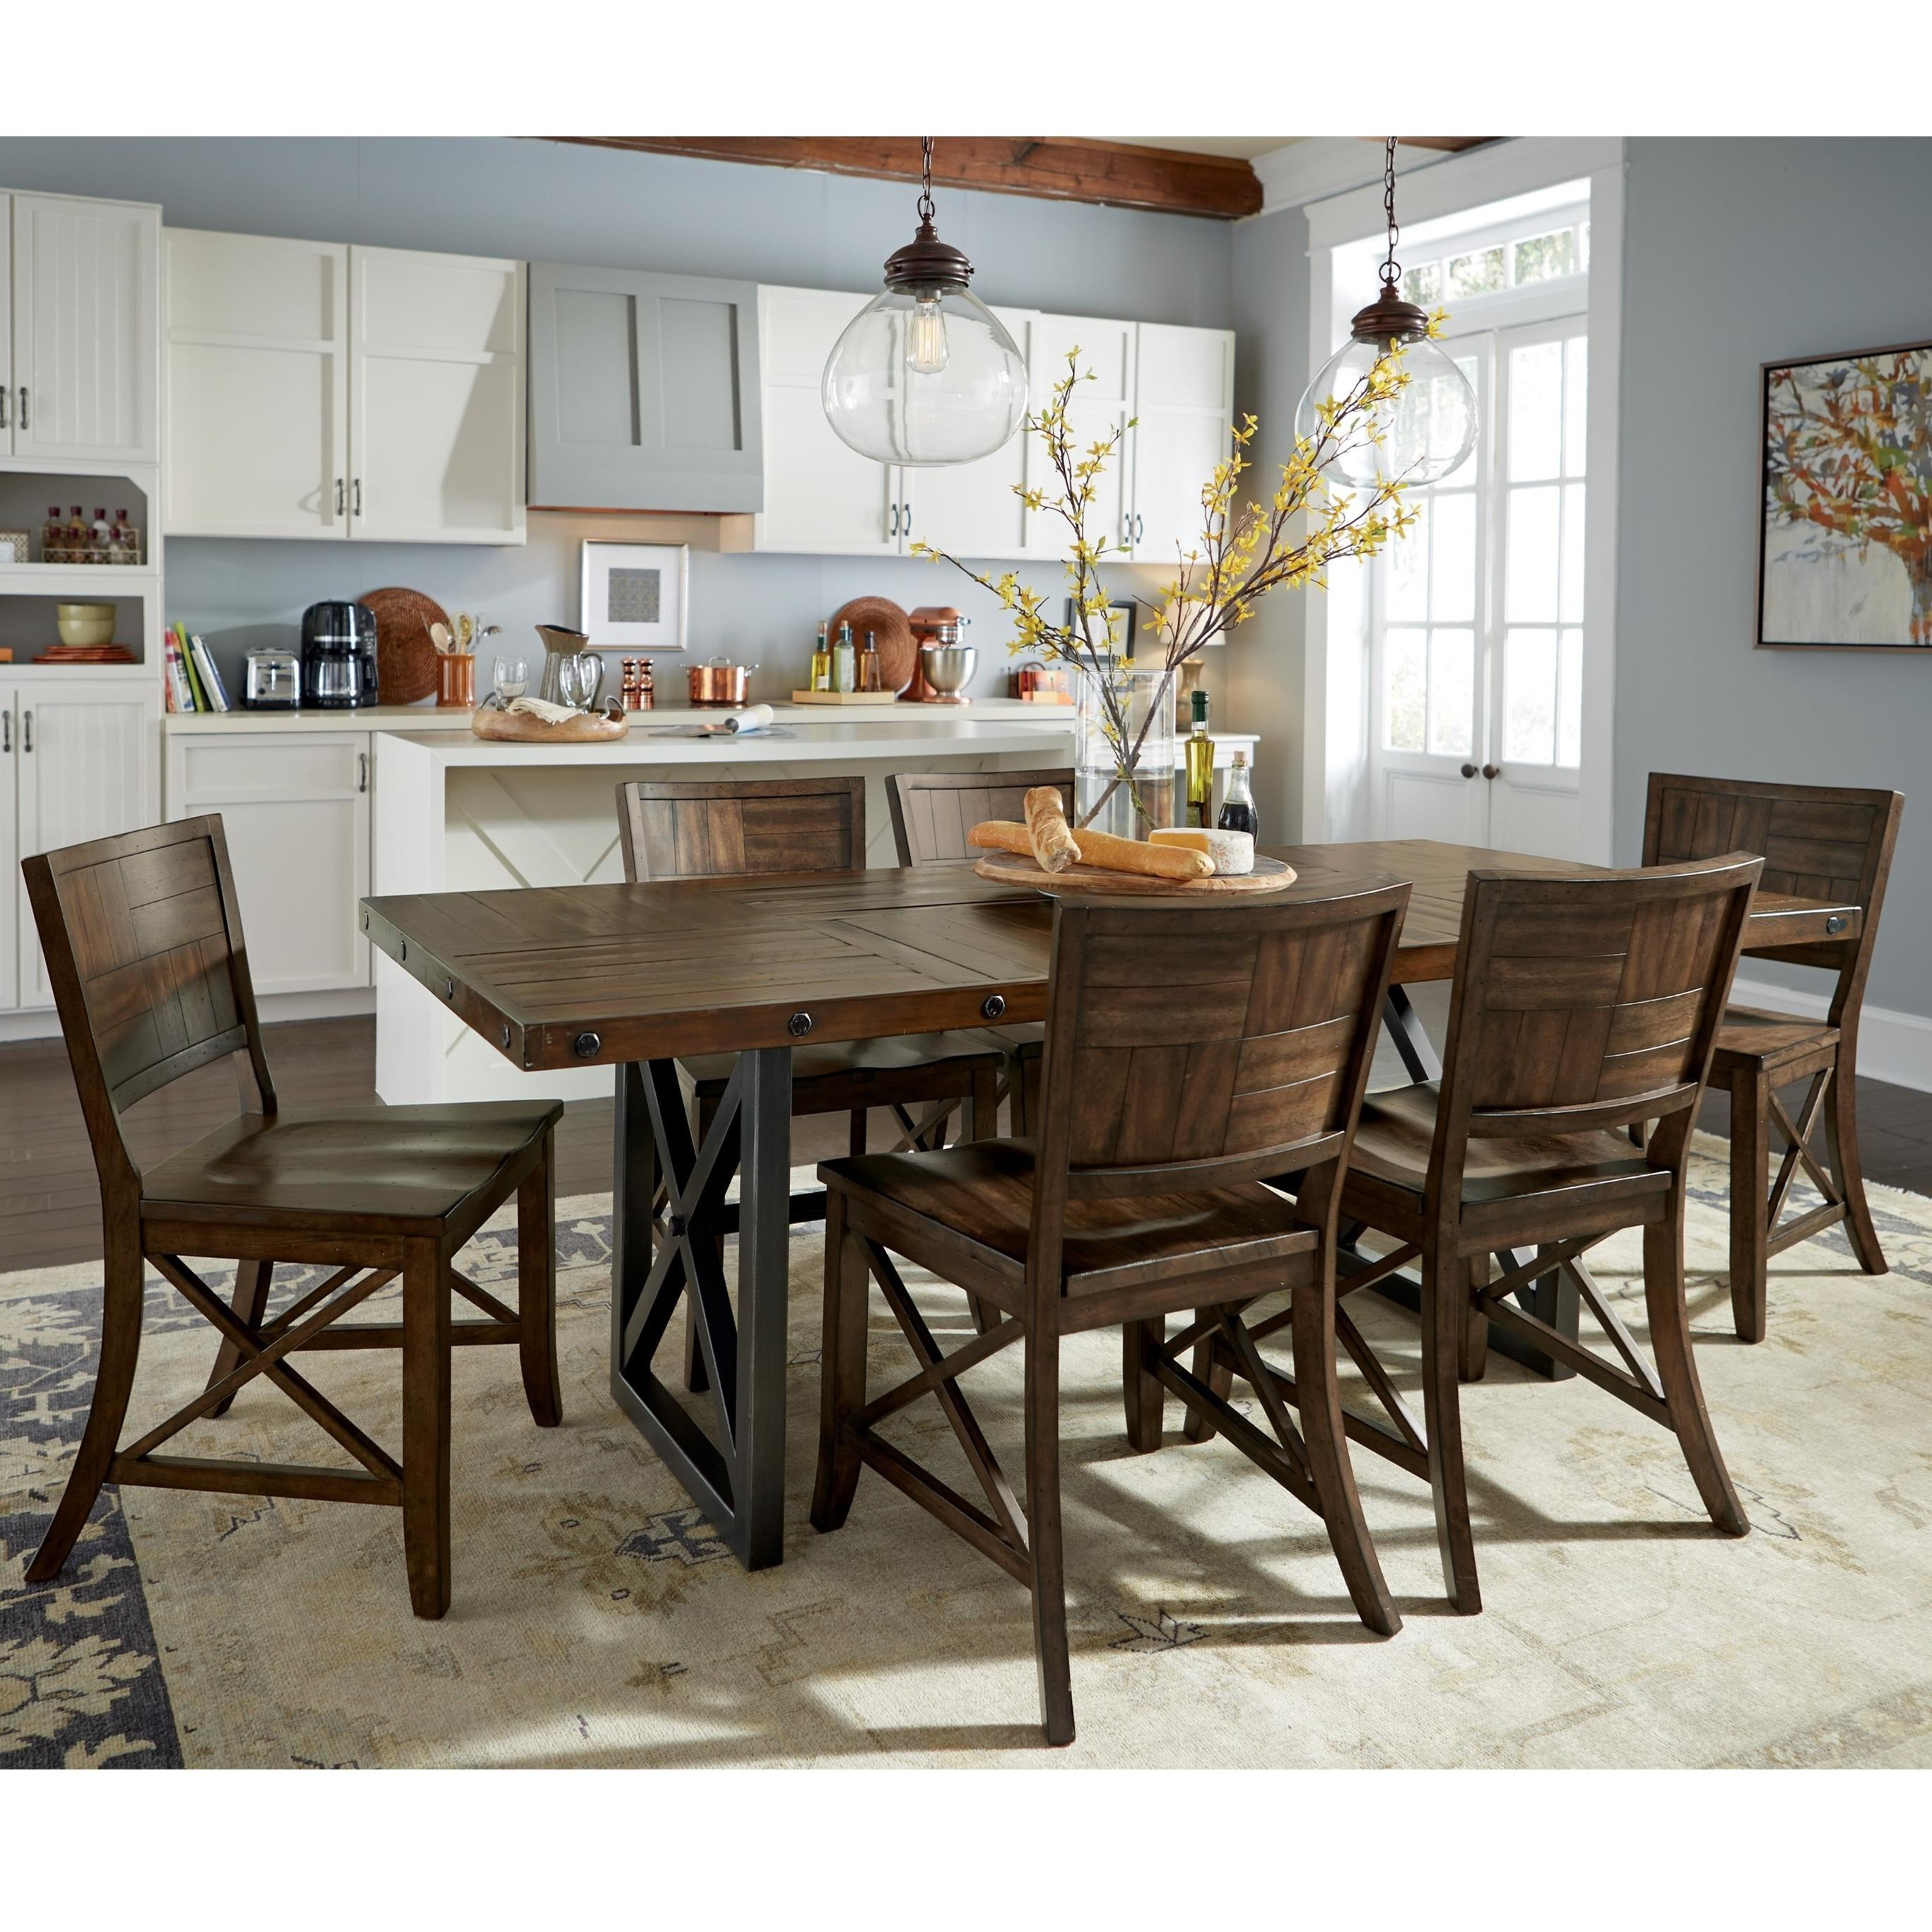 Flexsteel Wynwood Collection Carpenter 7 Piece Dining Set  : carpenter 905884015w6722 8316x840 b1jpgscalebothampwidth500ampheight500ampfsharpen25ampdown from www.pilgrimfurniturecity.com size 500 x 500 jpeg 65kB